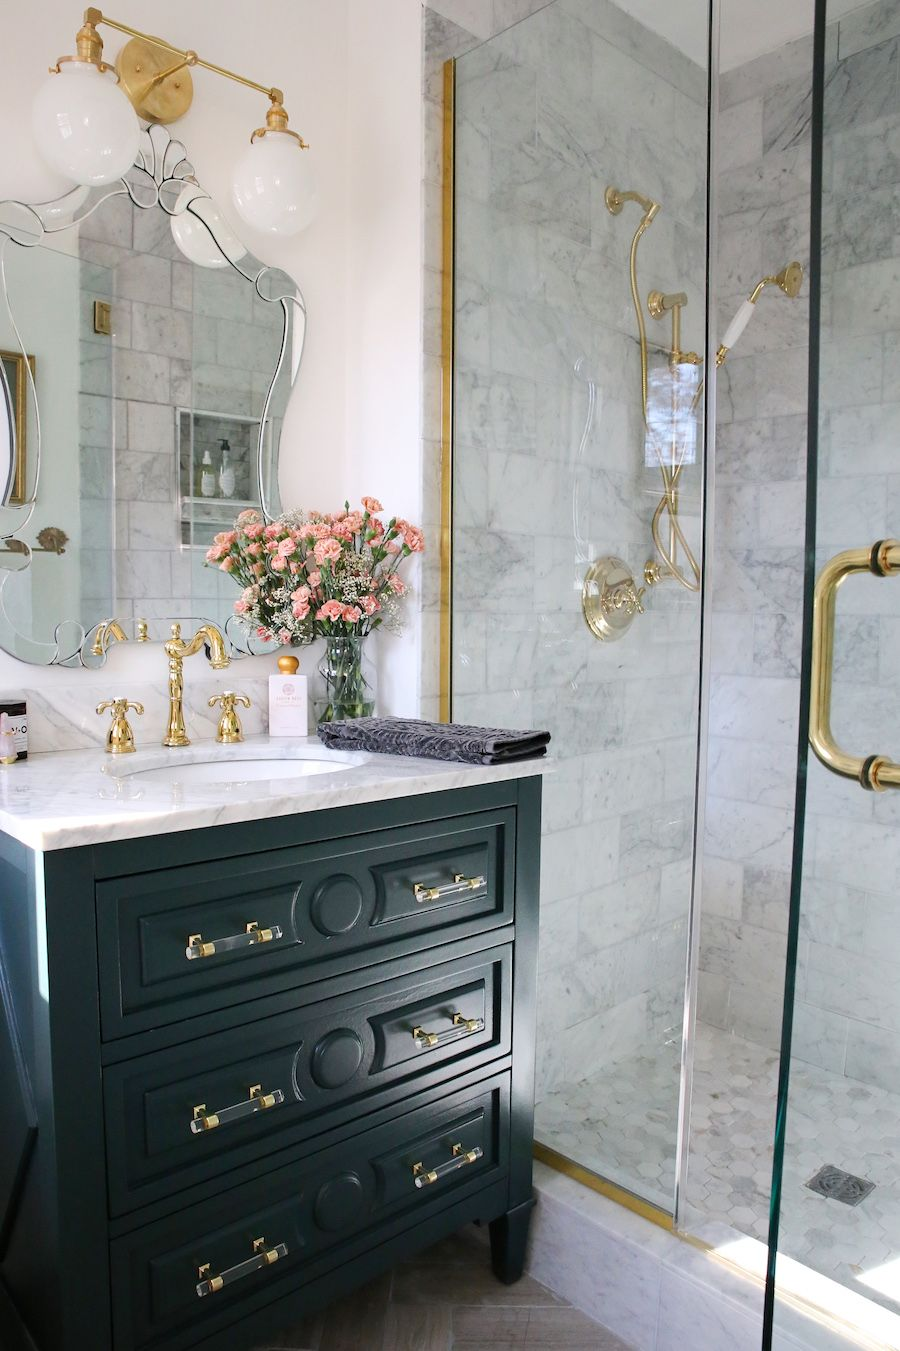 We See A Lot Of Bathroom Remodels But This One Takes The Cake Bathroom Renovation Diy Bathroom Interior Design Traditional Bathroom